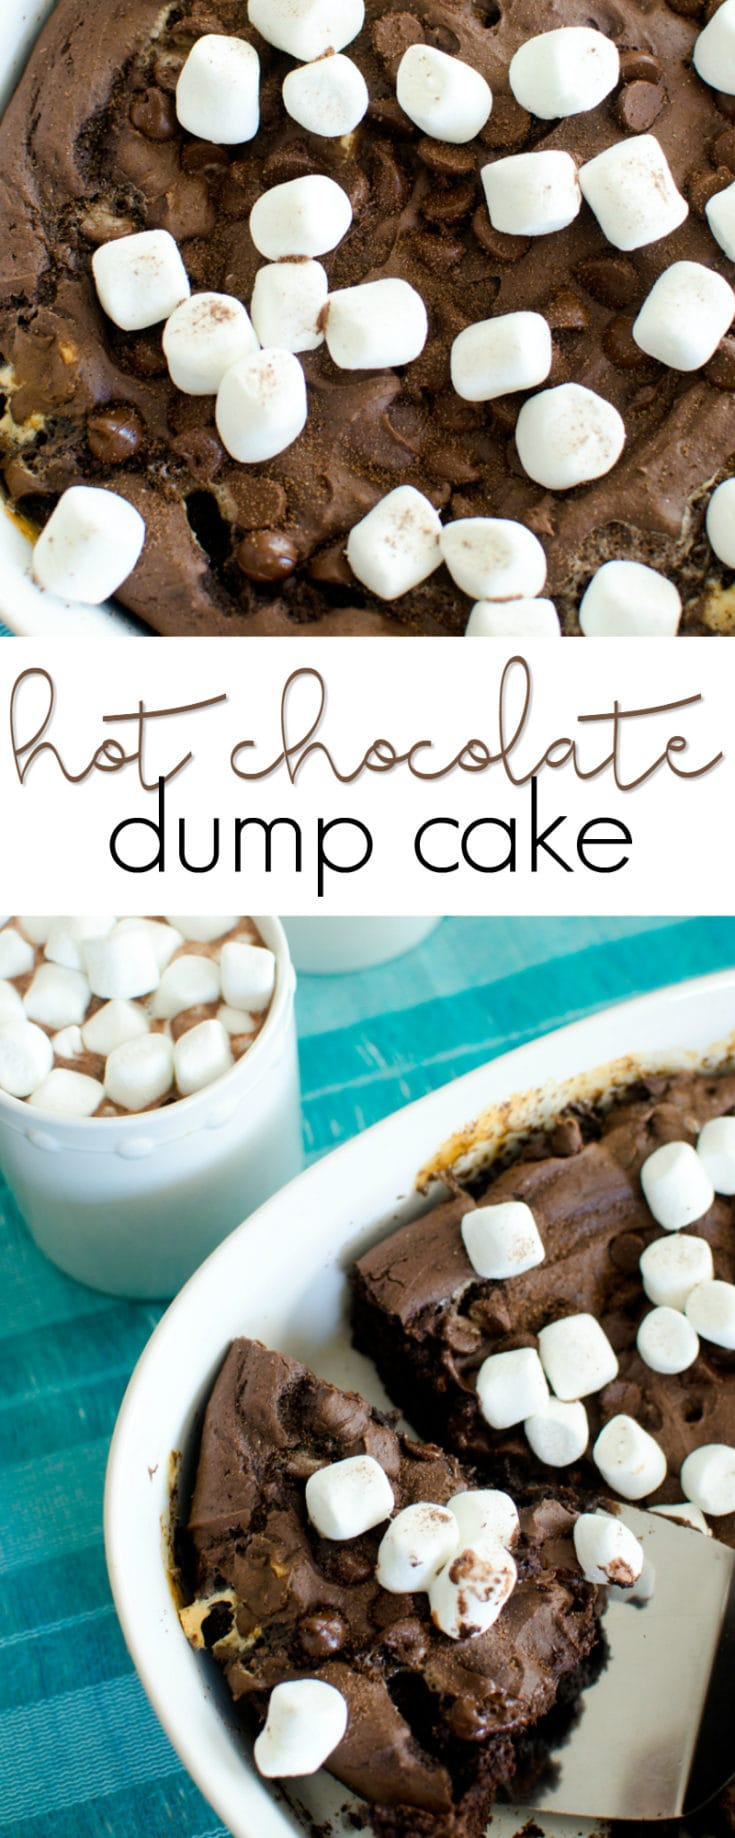 There's no need to decide between hot cocoa and chocolate cake – you can have both with this Hot Chocolate Dump Cake! ☕❄️☕❄️ This easy chocolate cake is topped with marshmallows and can be made before the kids come in from playing in the snow!